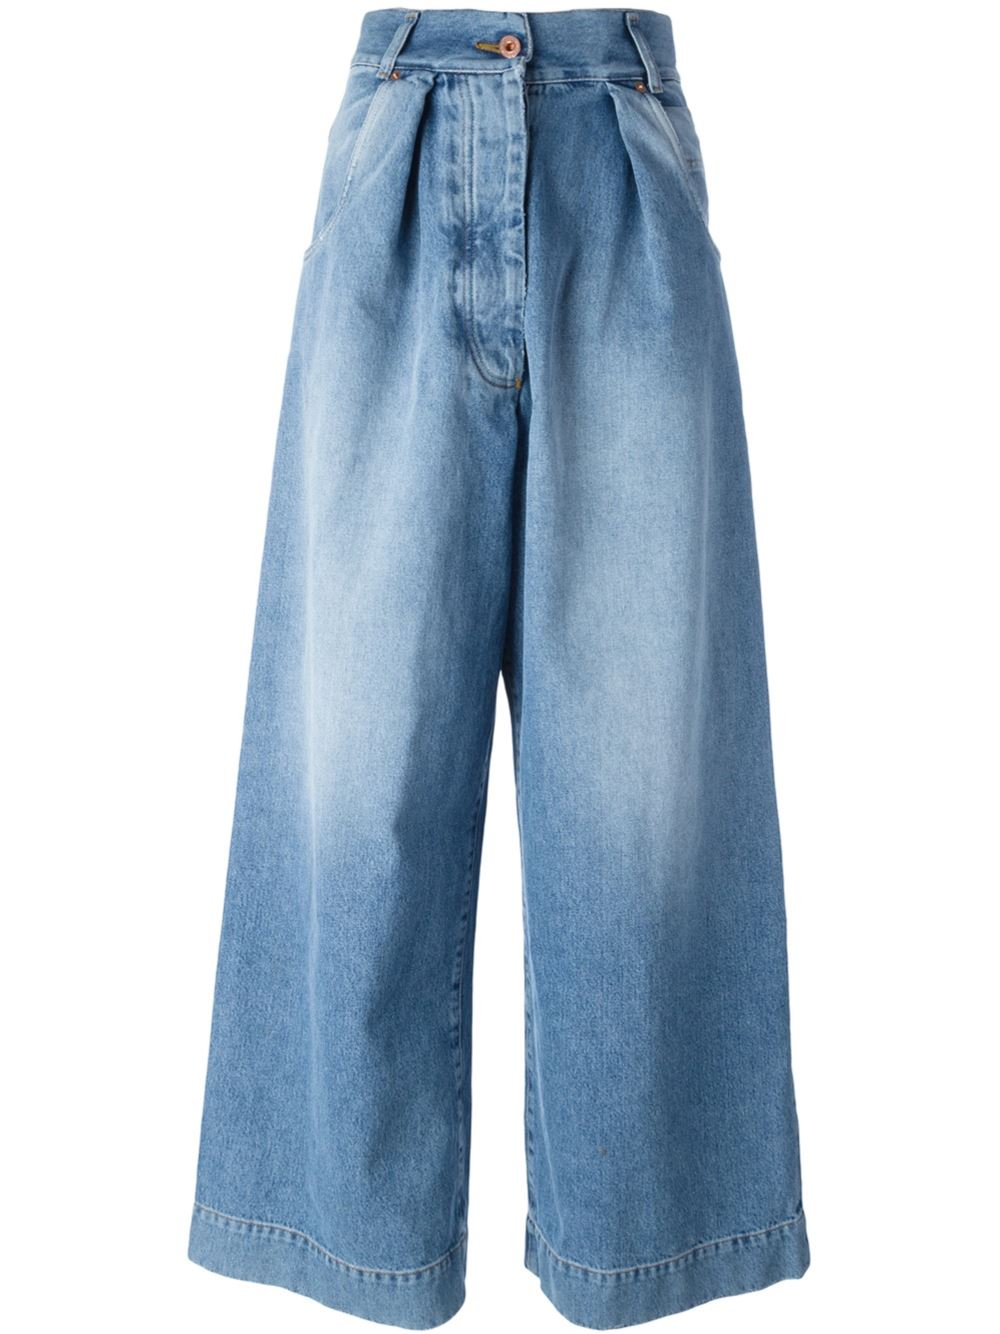 Off-White Pleated Jeans